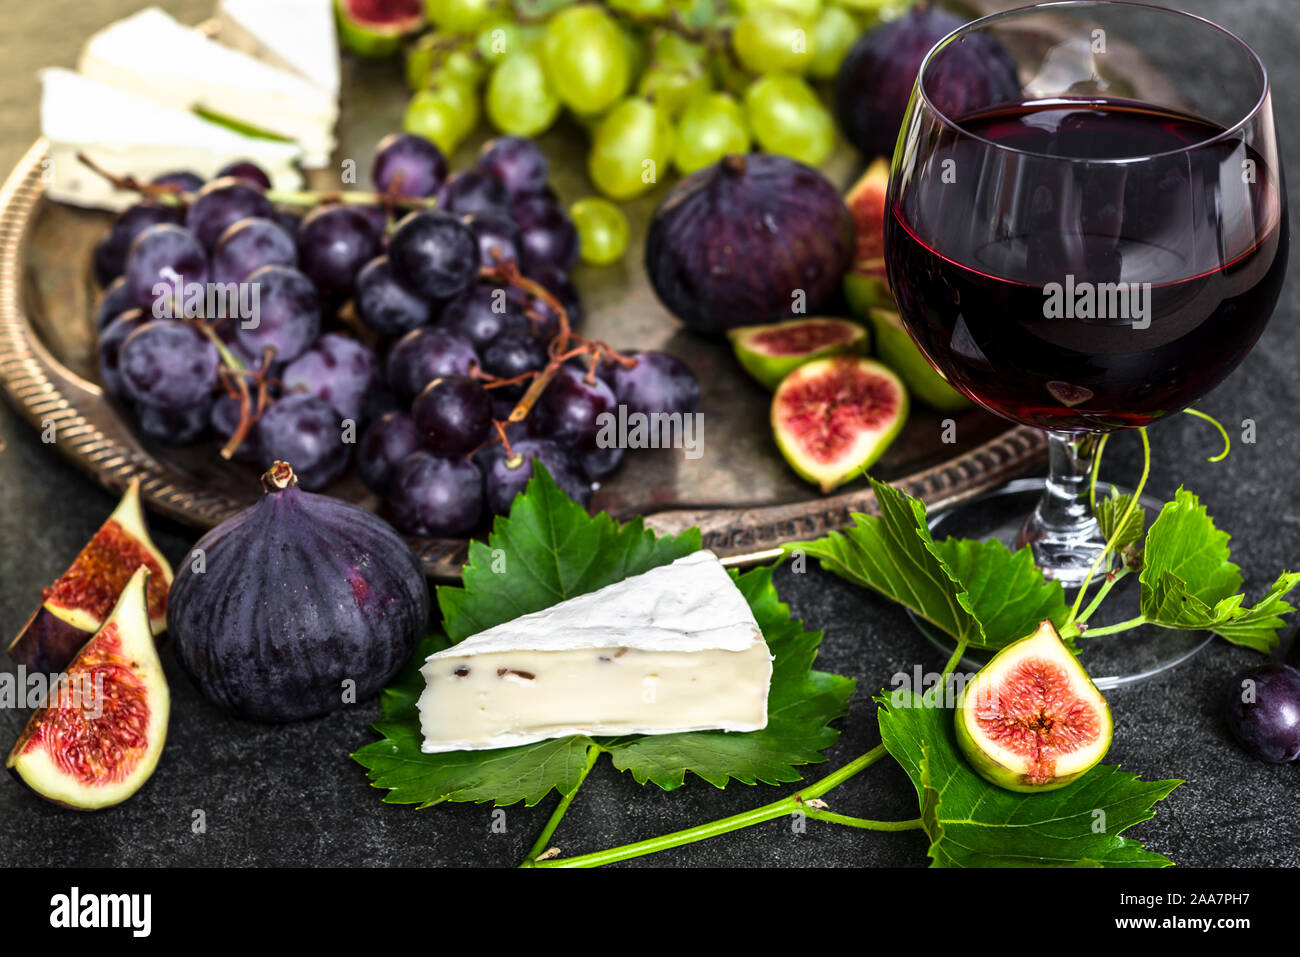 French Food Glass Of Red Wine And Snack Set Plate With Cheese Grapes And Figs Stock Photo Alamy